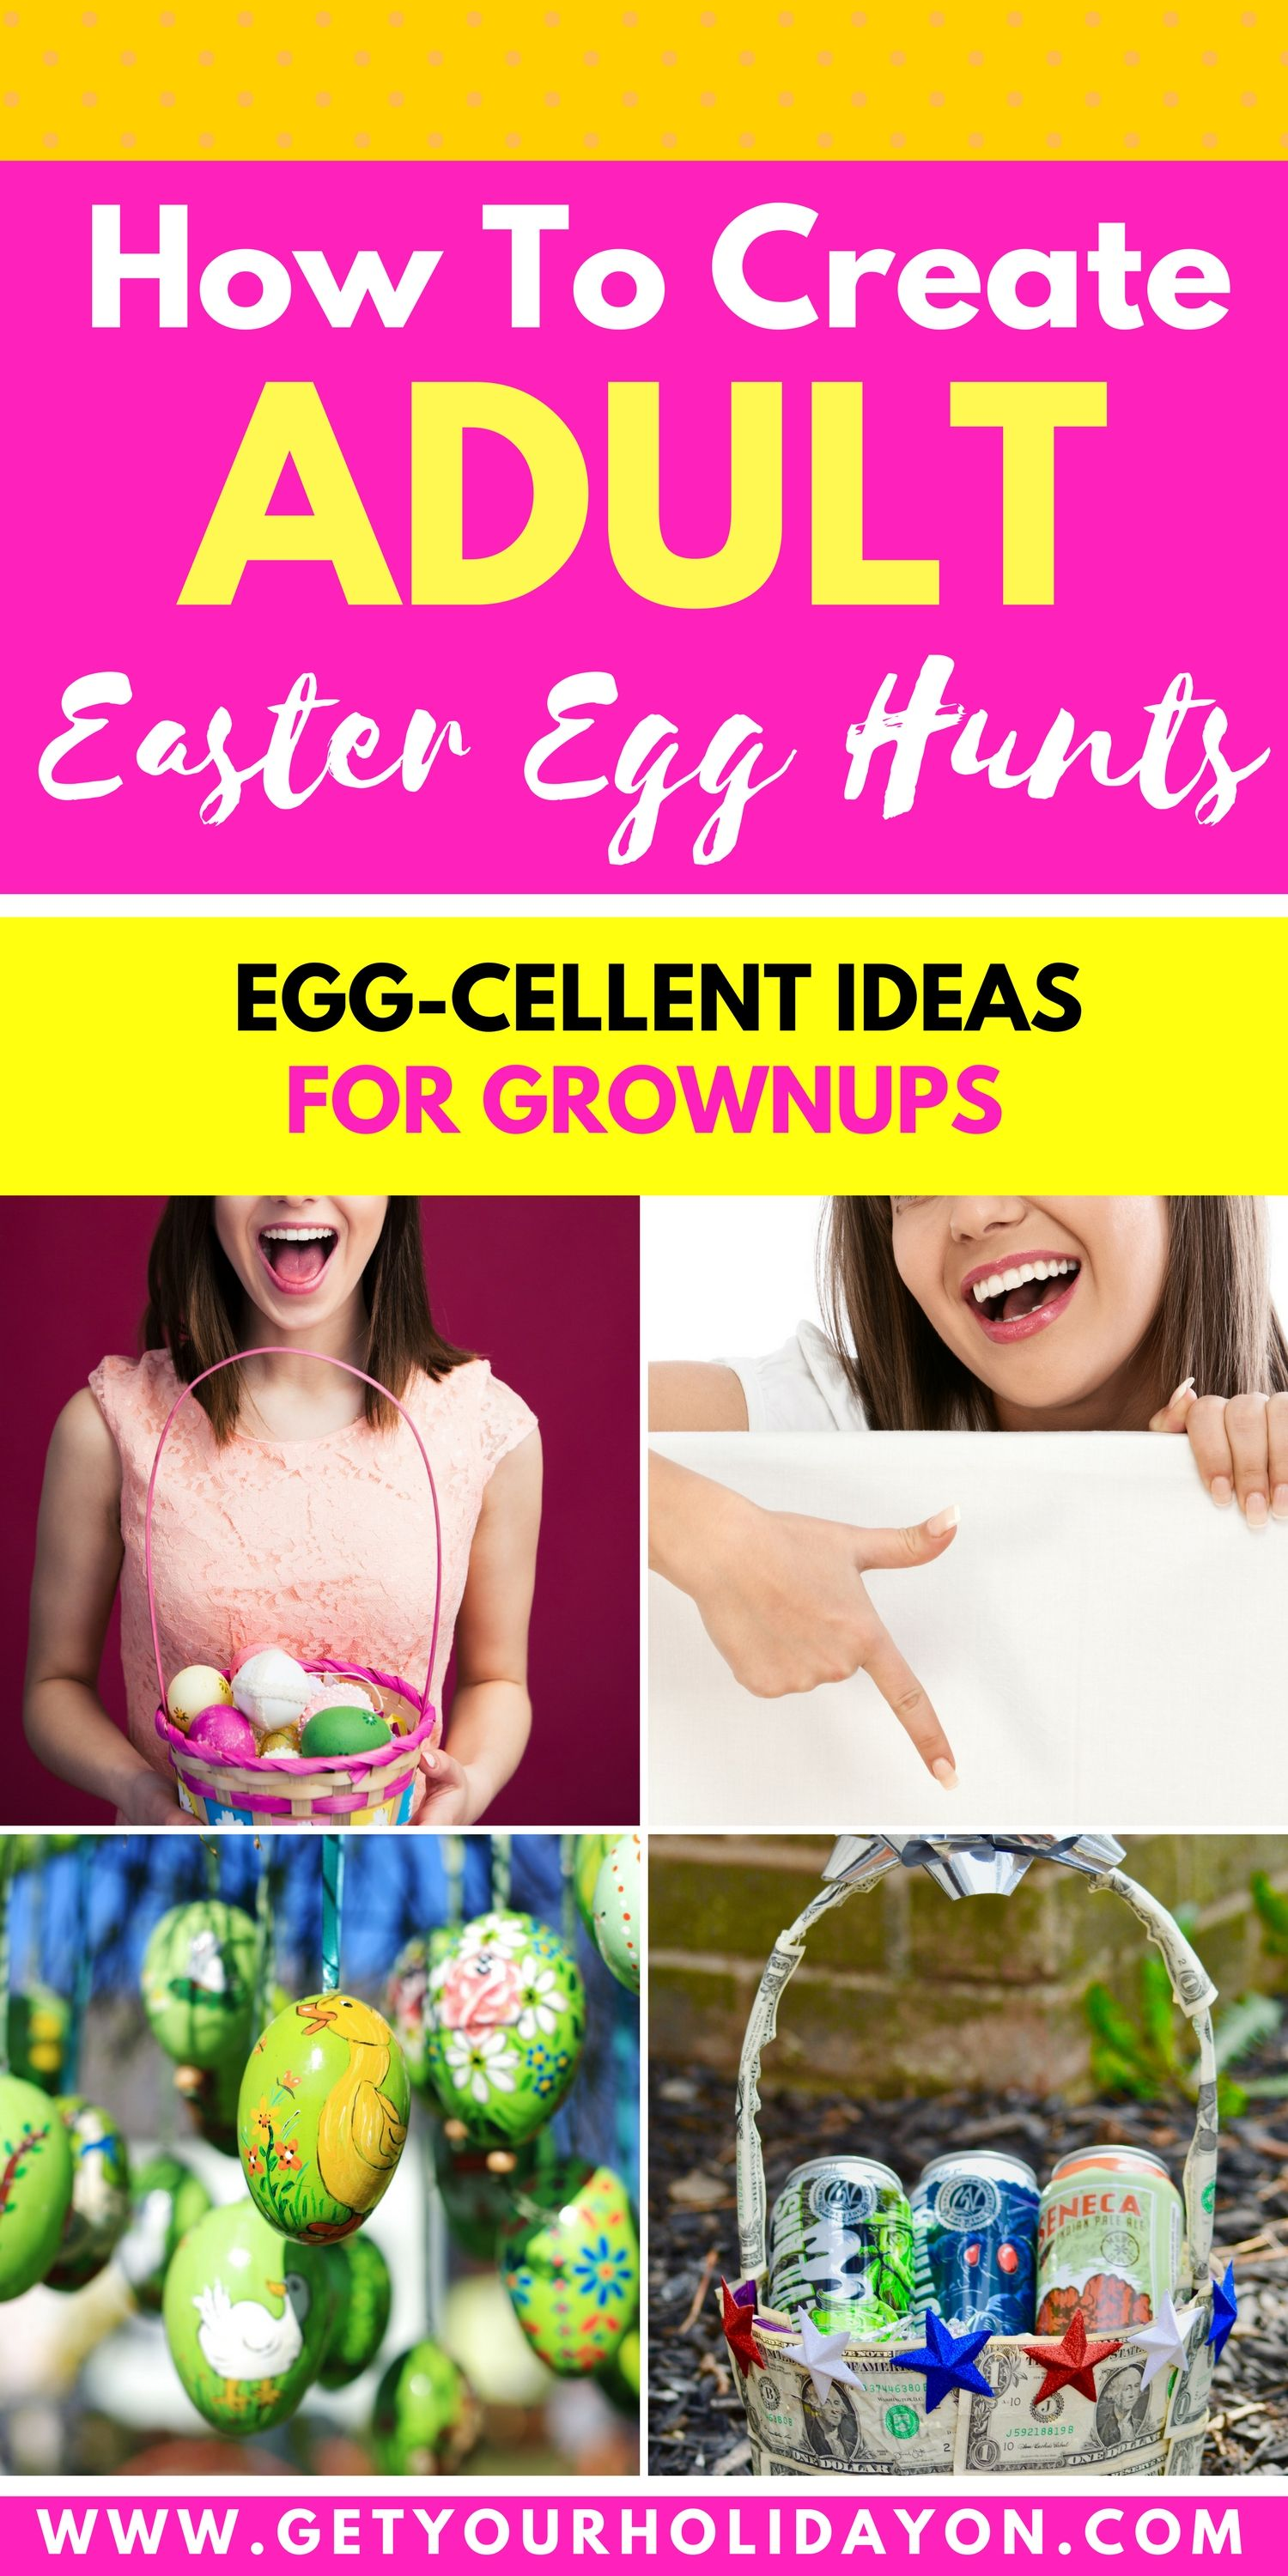 What To Put In Adult Easter Egg Hunt